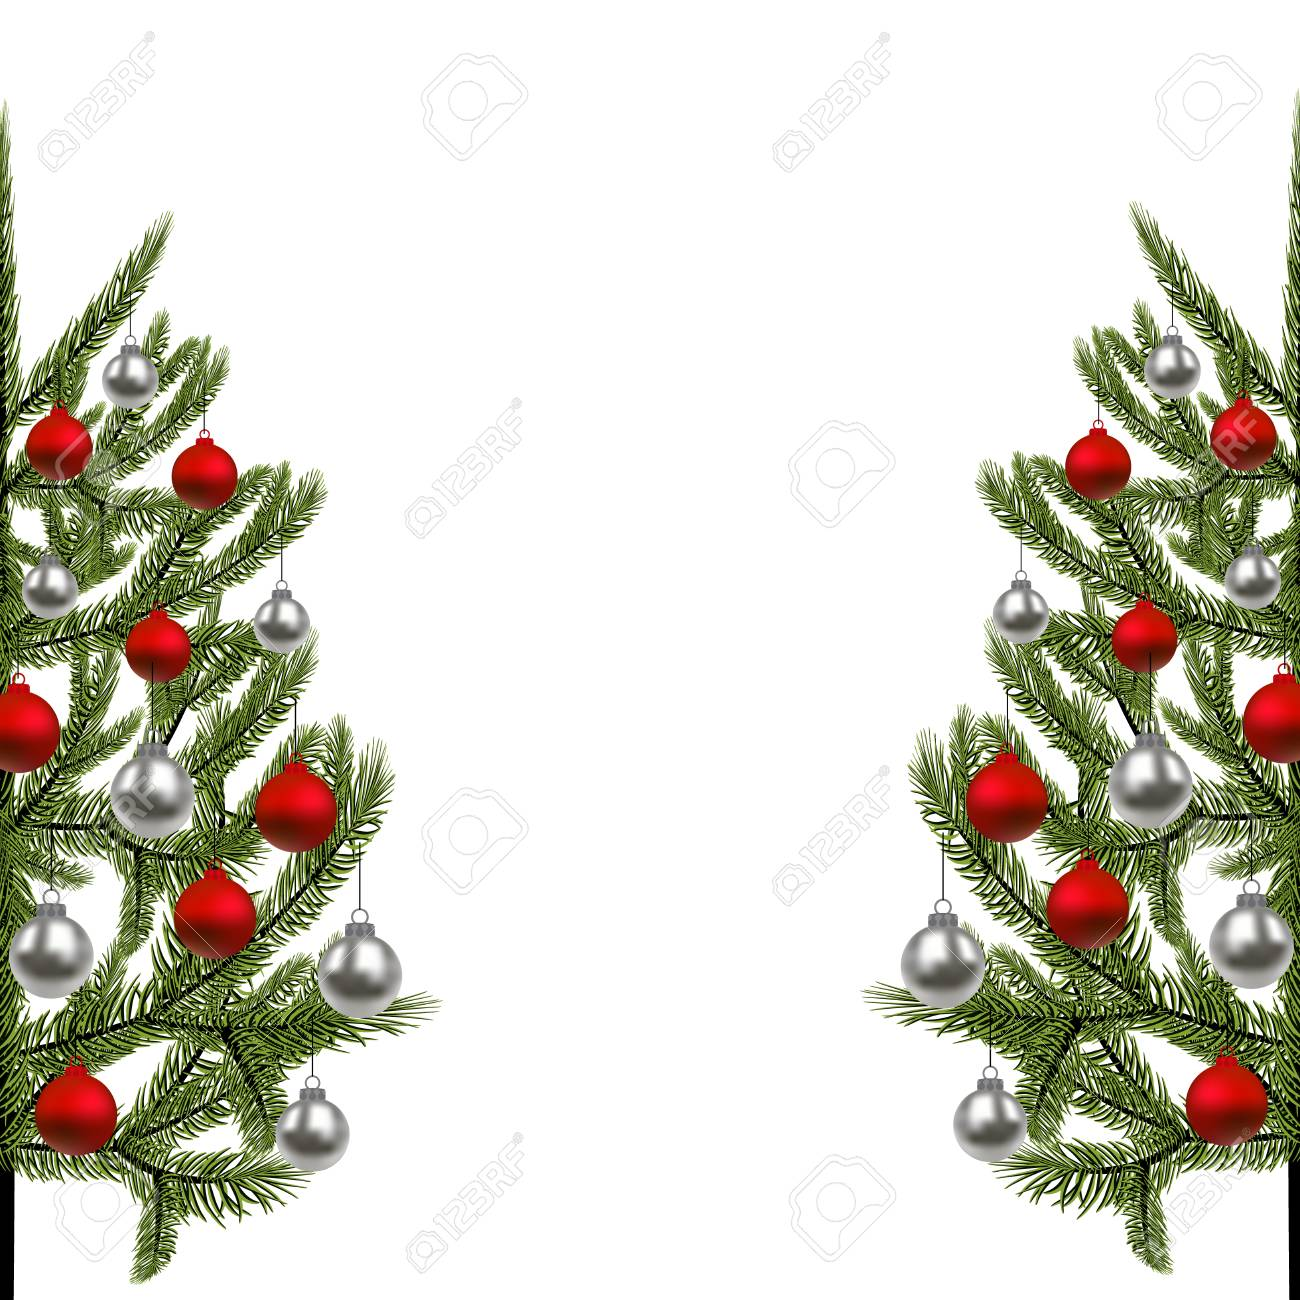 Wonderful Illustration   New Year, Christmas Card. The Image Of A Beautiful Green  Spruce On Both Sides, Decorated With Red And Silver Balls. Illustration